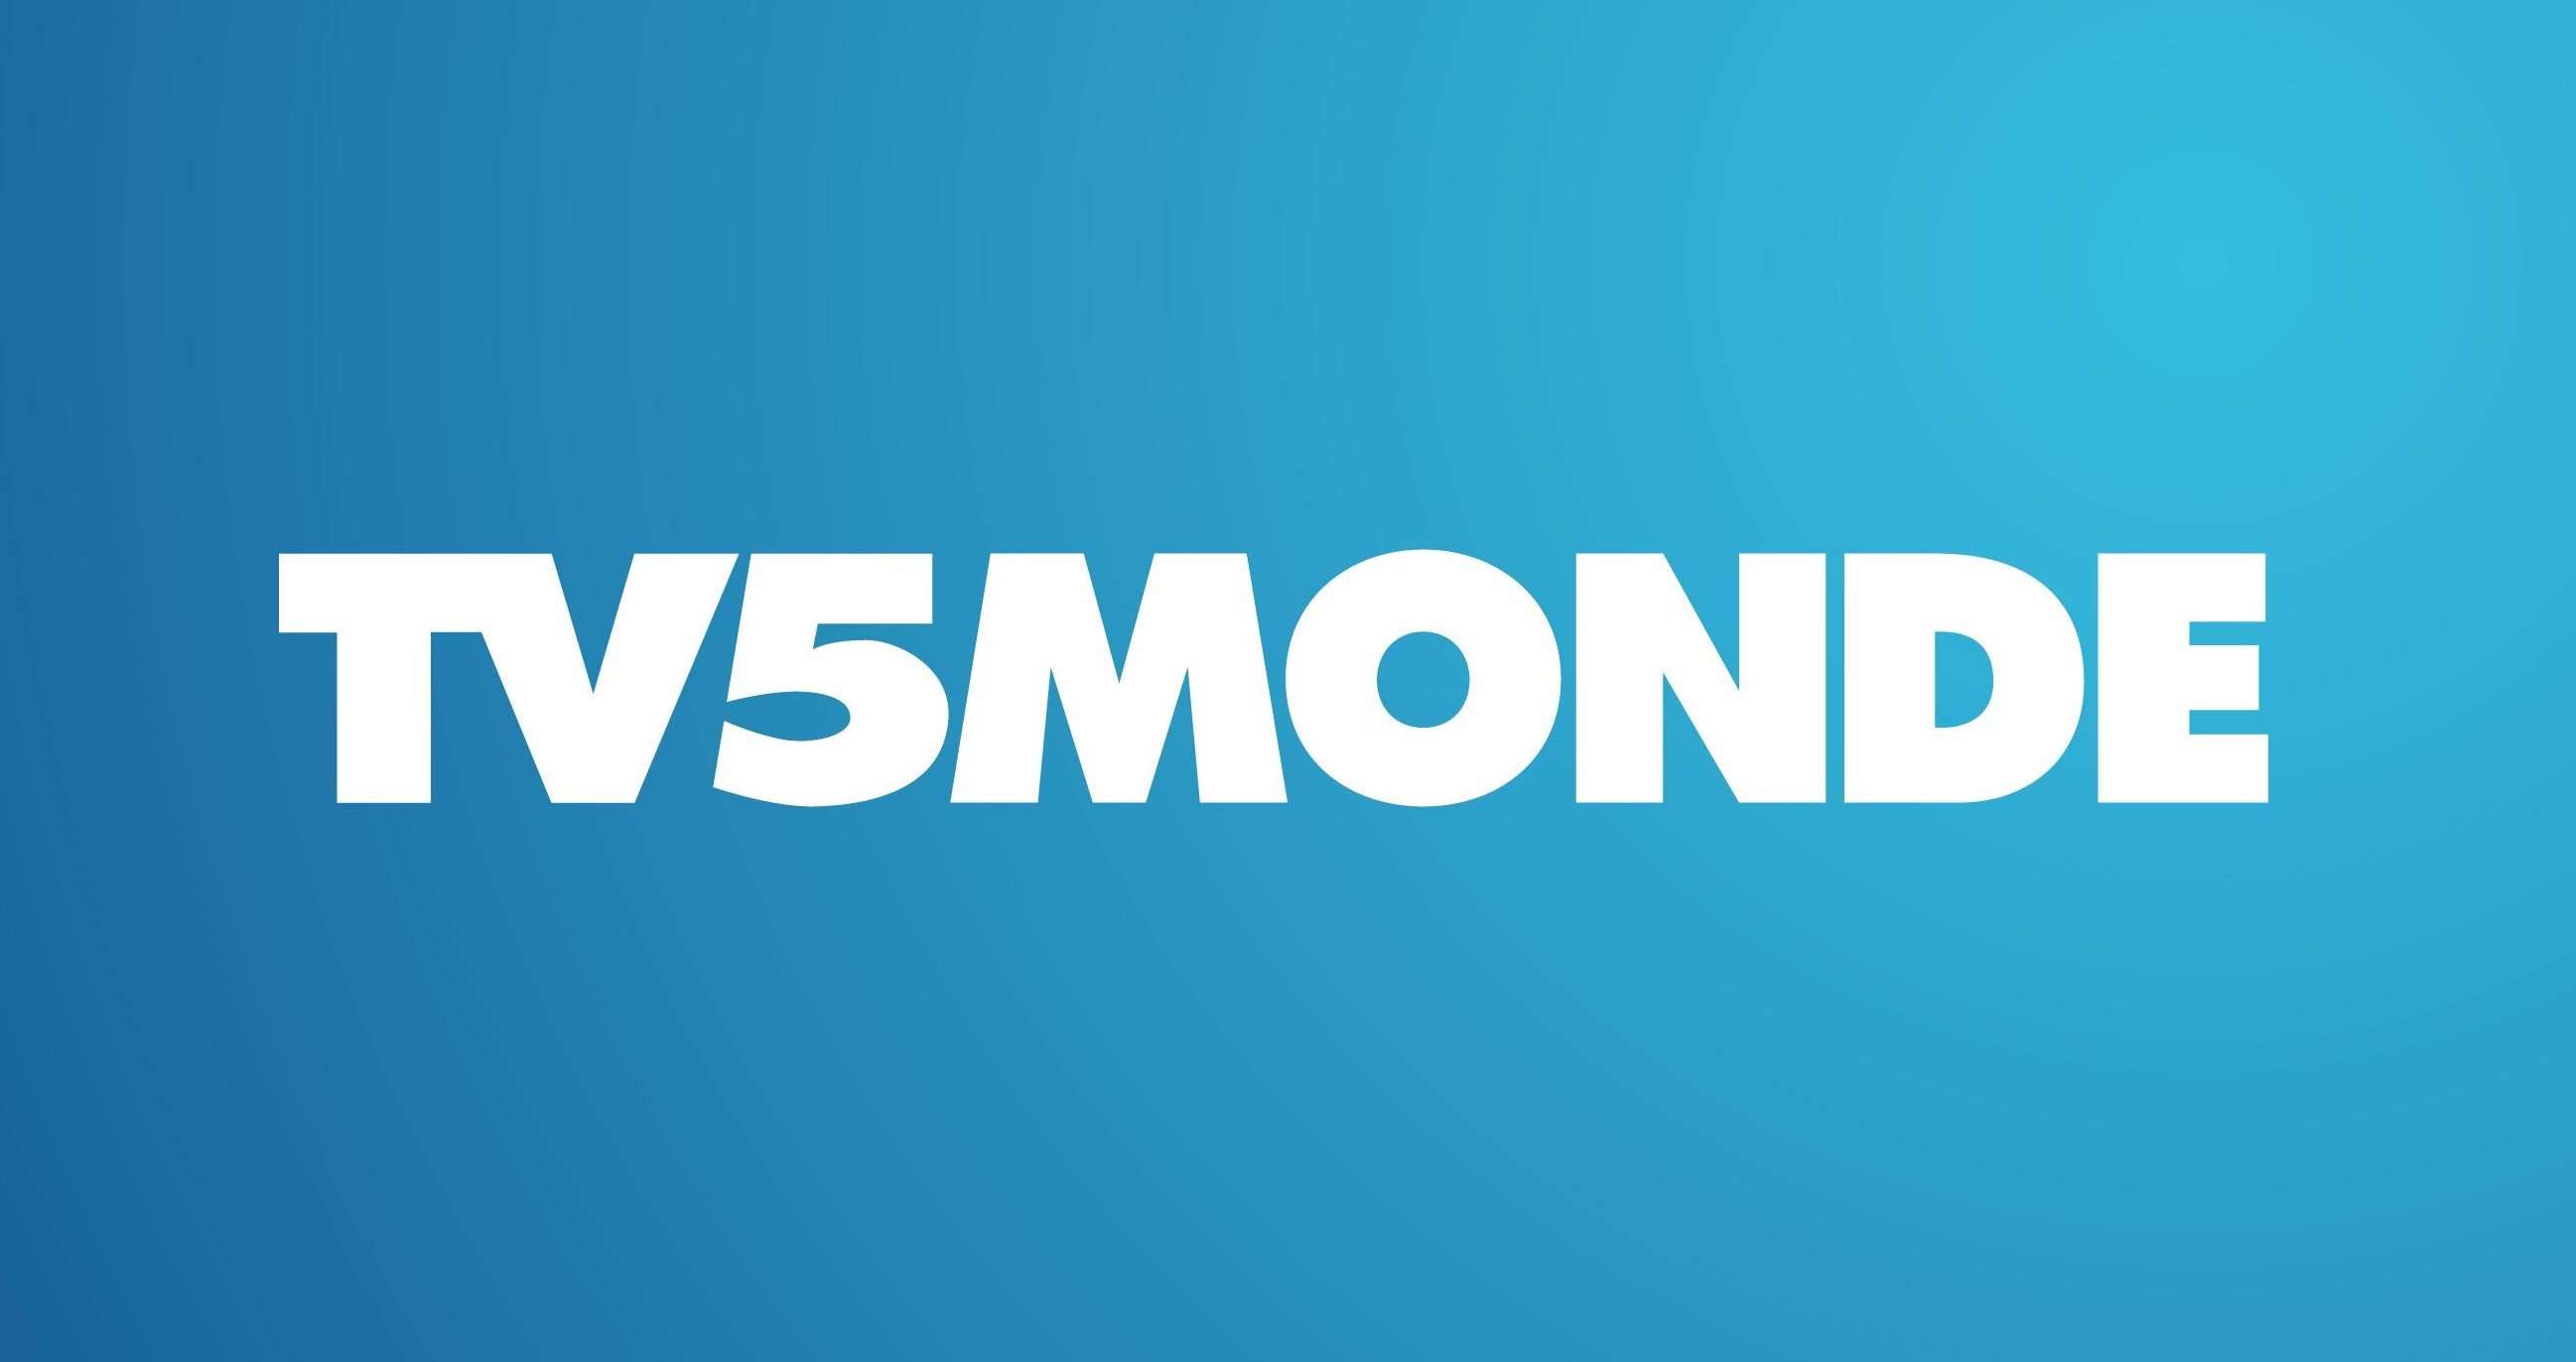 TV5 MONDE moves to online distribution in the UK